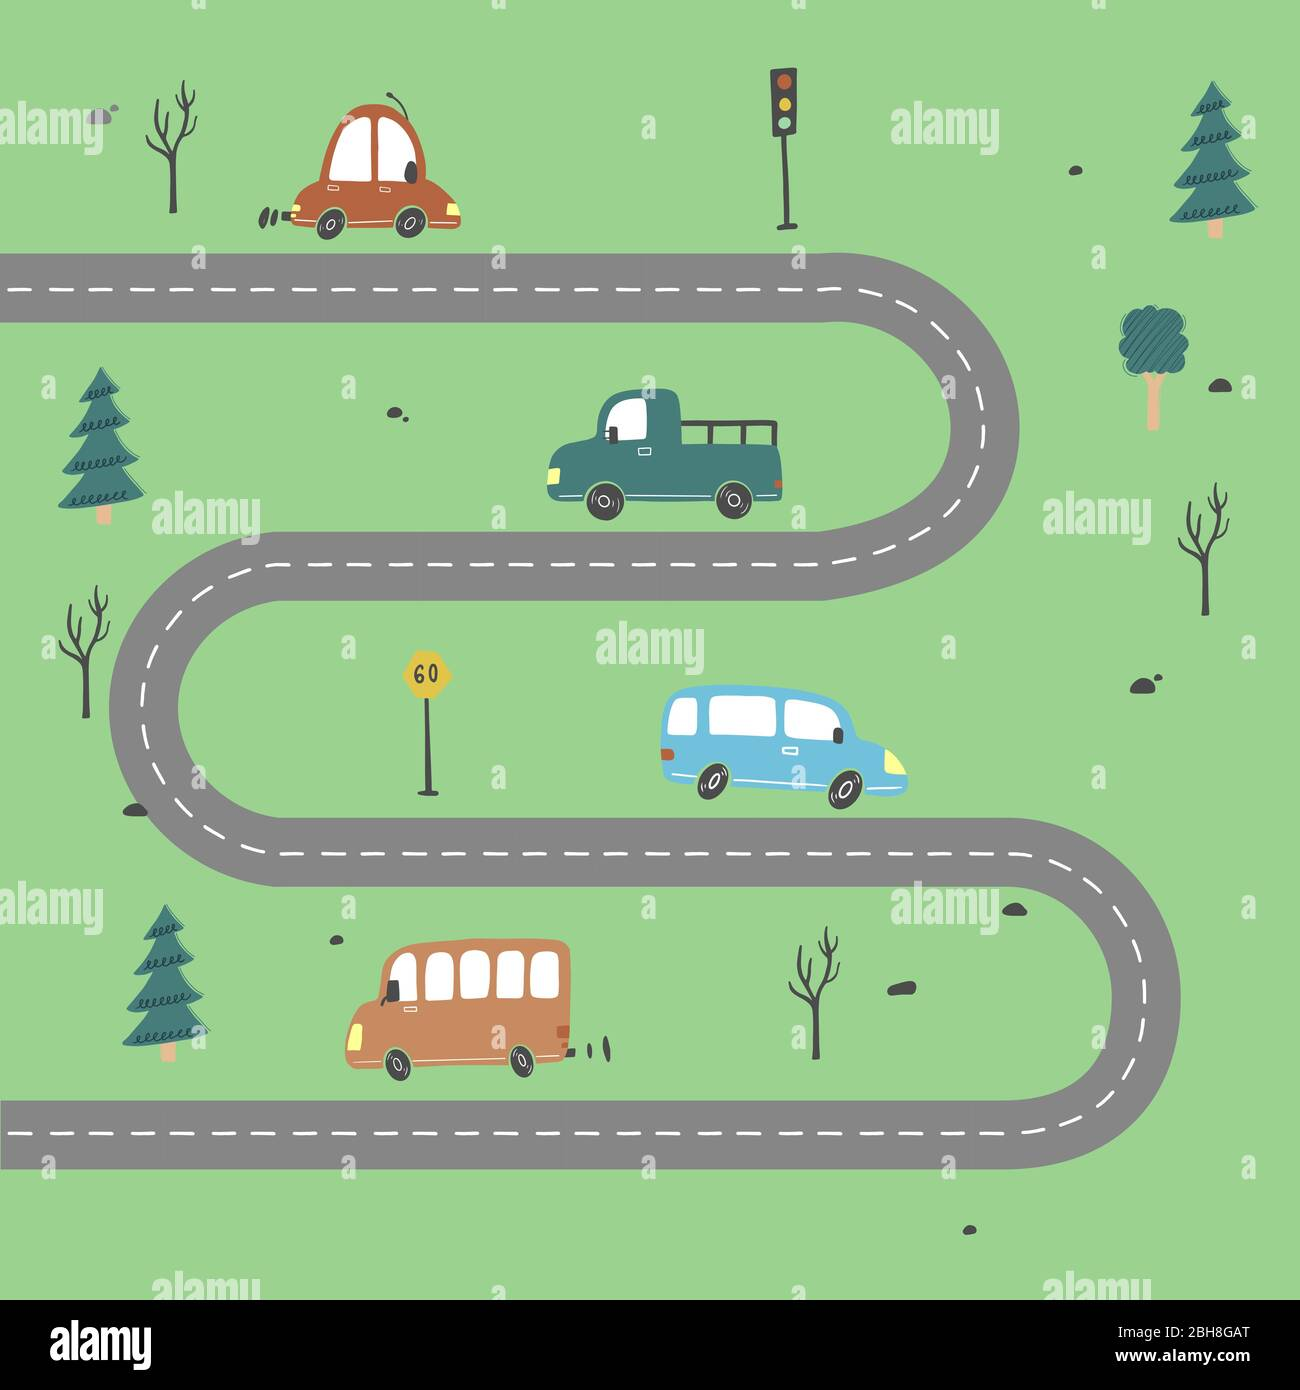 Cartoon Cute Kids Map With Car Road City Landscape Elements Cars Building Road Of Hand Drawn Children Toy Style Vector Illustration Stock Vector Image Art Alamy